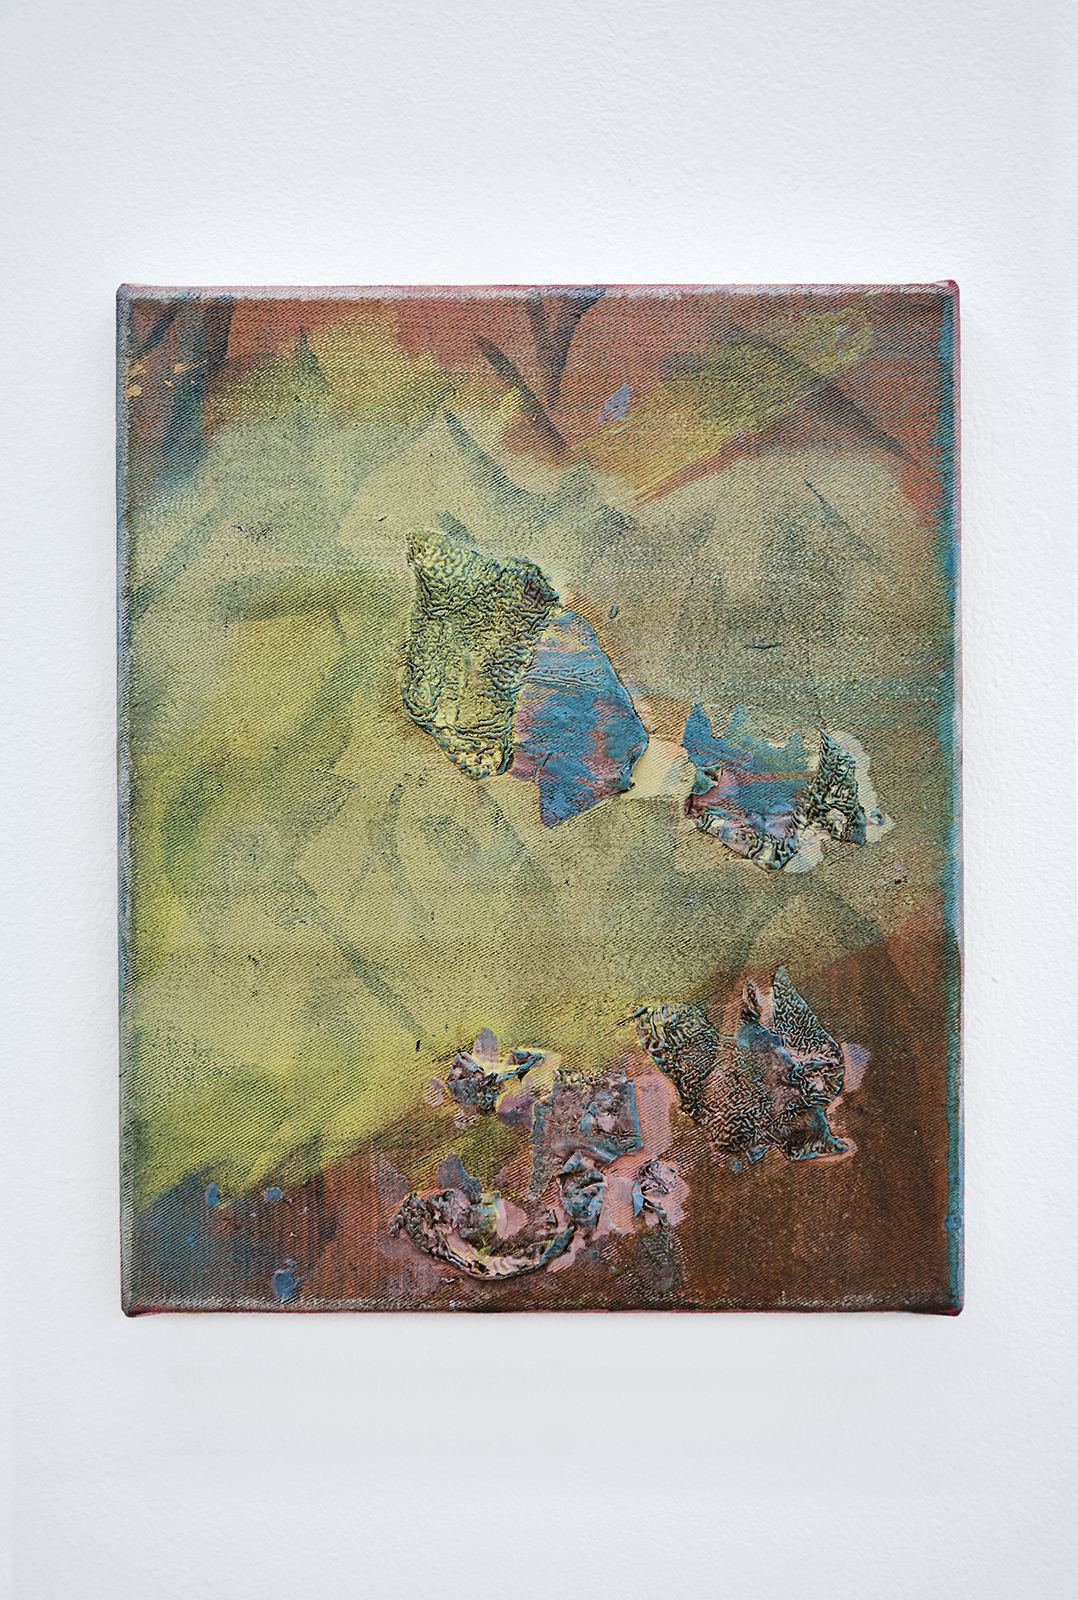 Anna Schachinger, Untitled, 2015. Oil on canvas, 22 x 27 cm (8.5 x 10.5 in.)